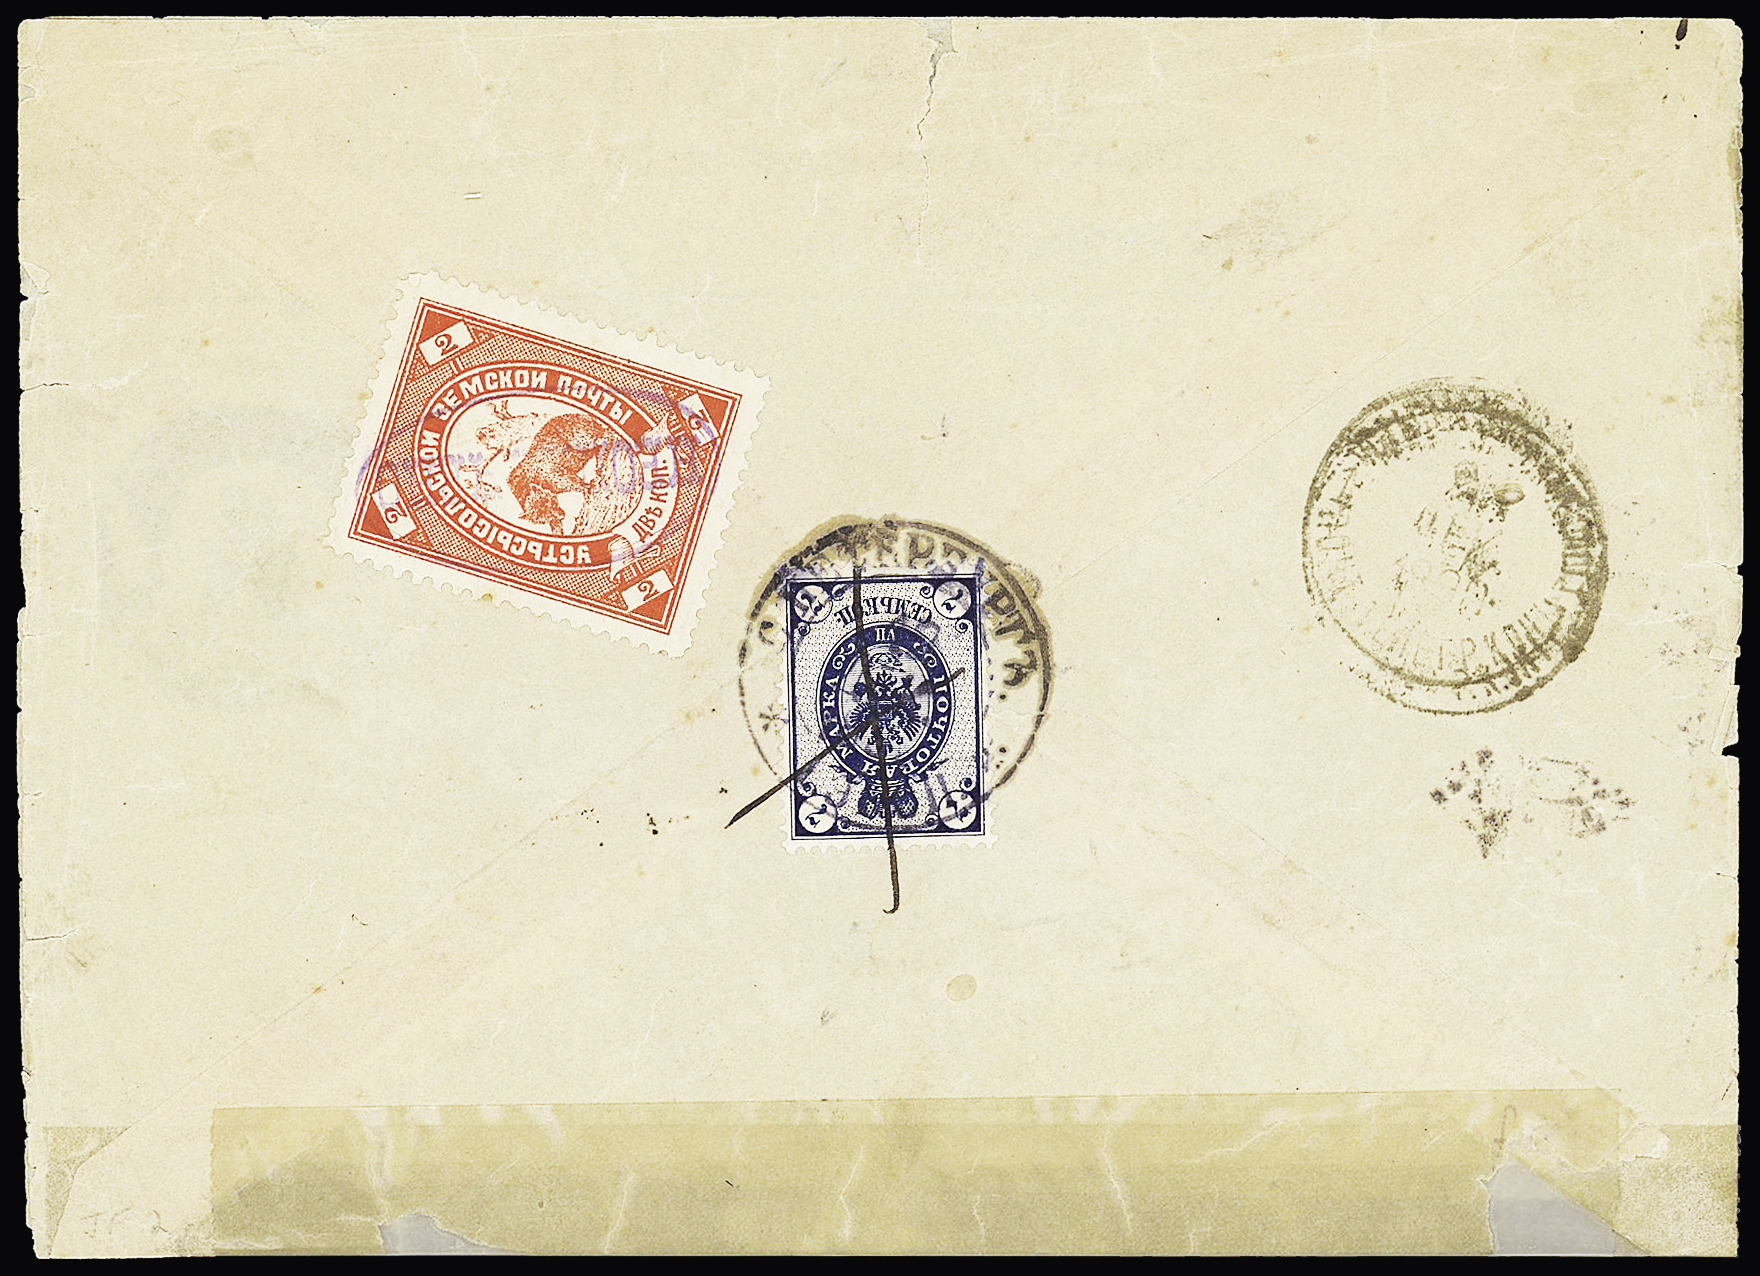 Lot 581 - Eastern Europe » RUSSIA - ZEMSTVOS » Ustsysolsk (Vologda Government)  -  Le Timbre Classique SA SALE ON OFFERS N ° 37 PARIS